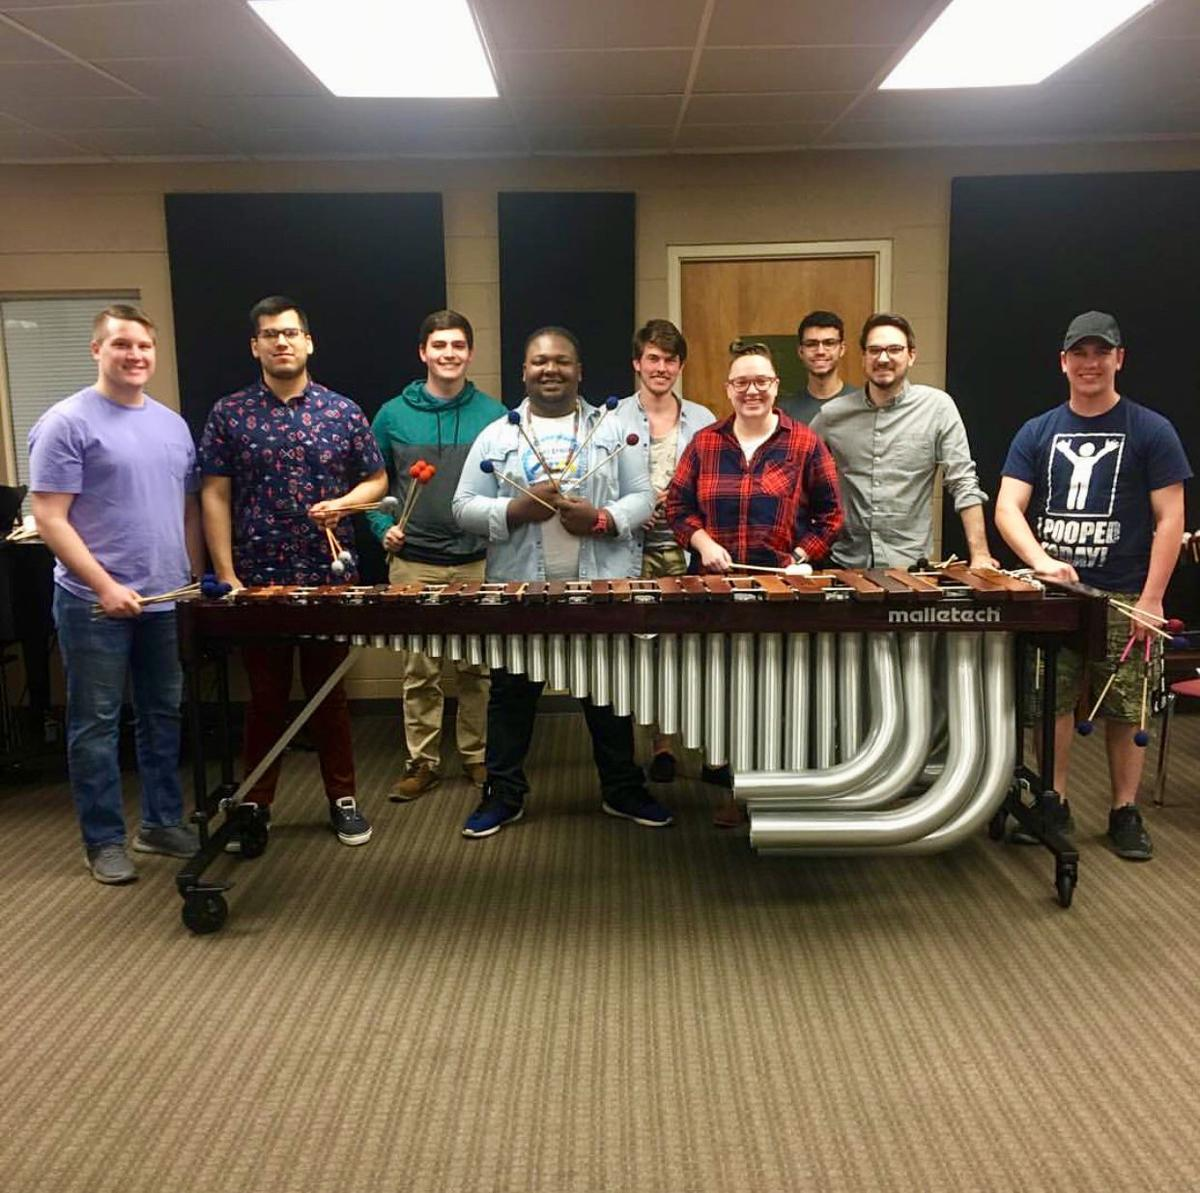 """""""'Marimba Madness' is an event where all of the students in the percussion studio, from freshmen to graduate students, get the opportunity to showcase a marimba piece they have recently been working on,"""" graduate student Susannah Clabough said.  Photo by Ashley Smith, Staff Reporter"""